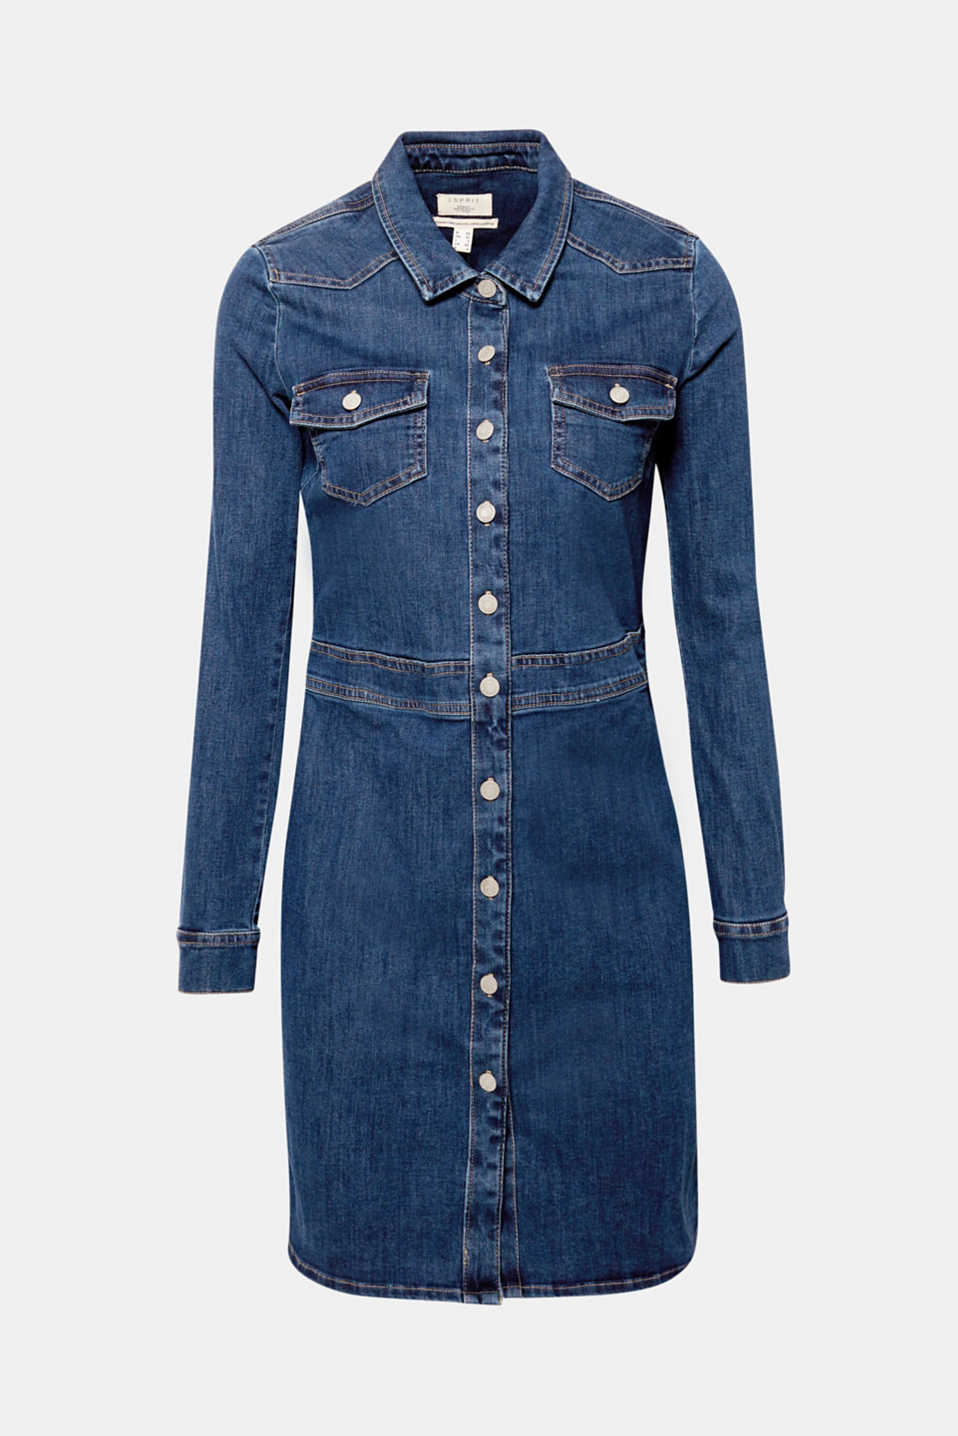 denim jurk